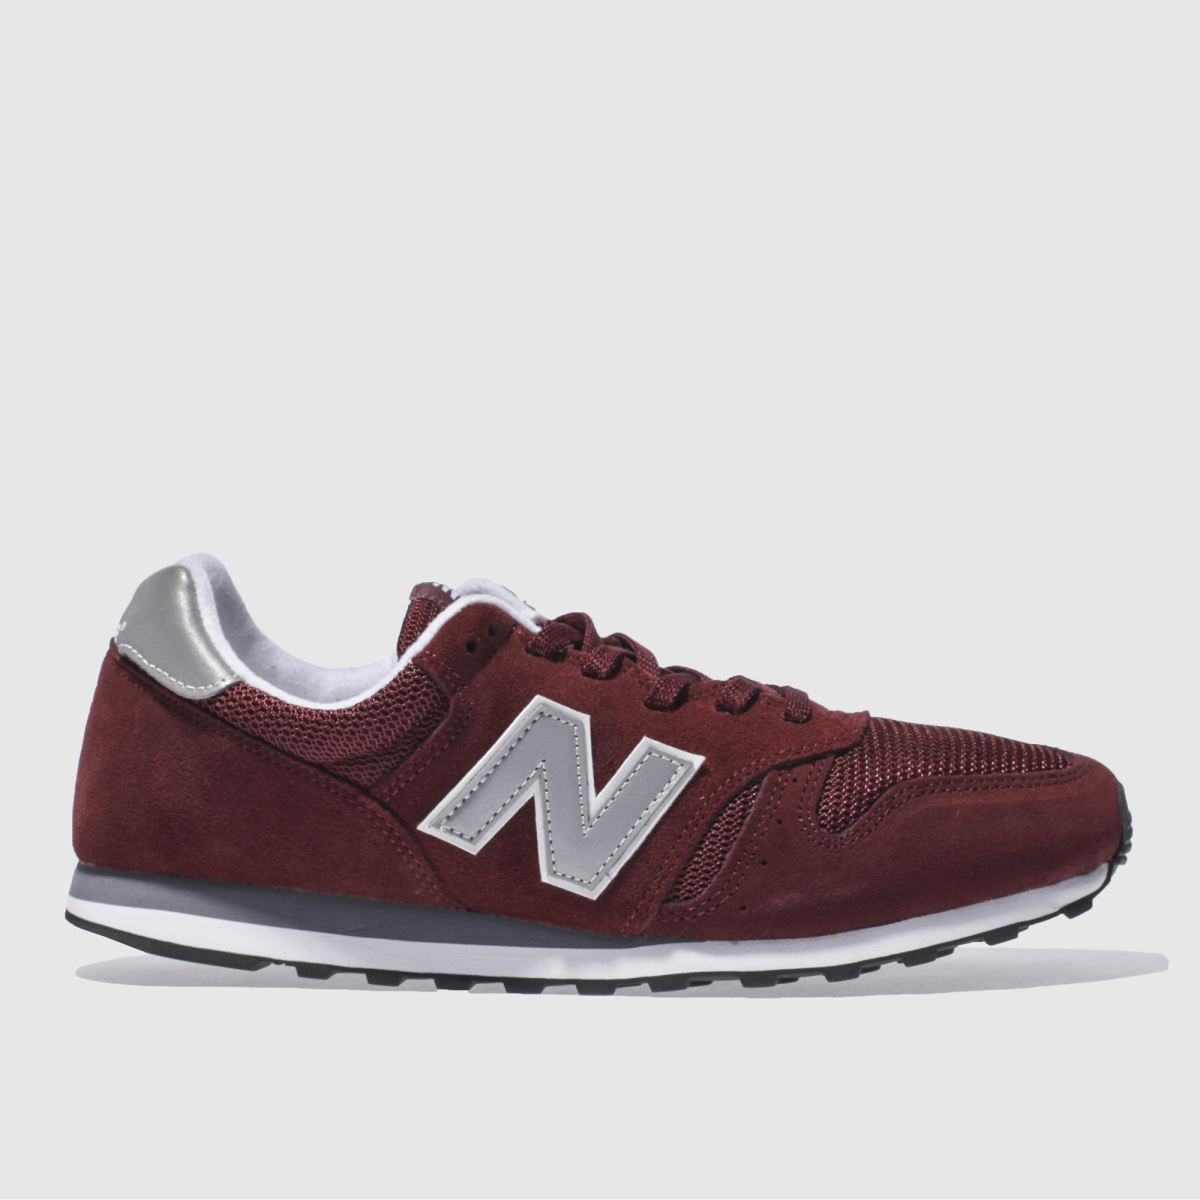 New Balance Burgundy 373 Trainers